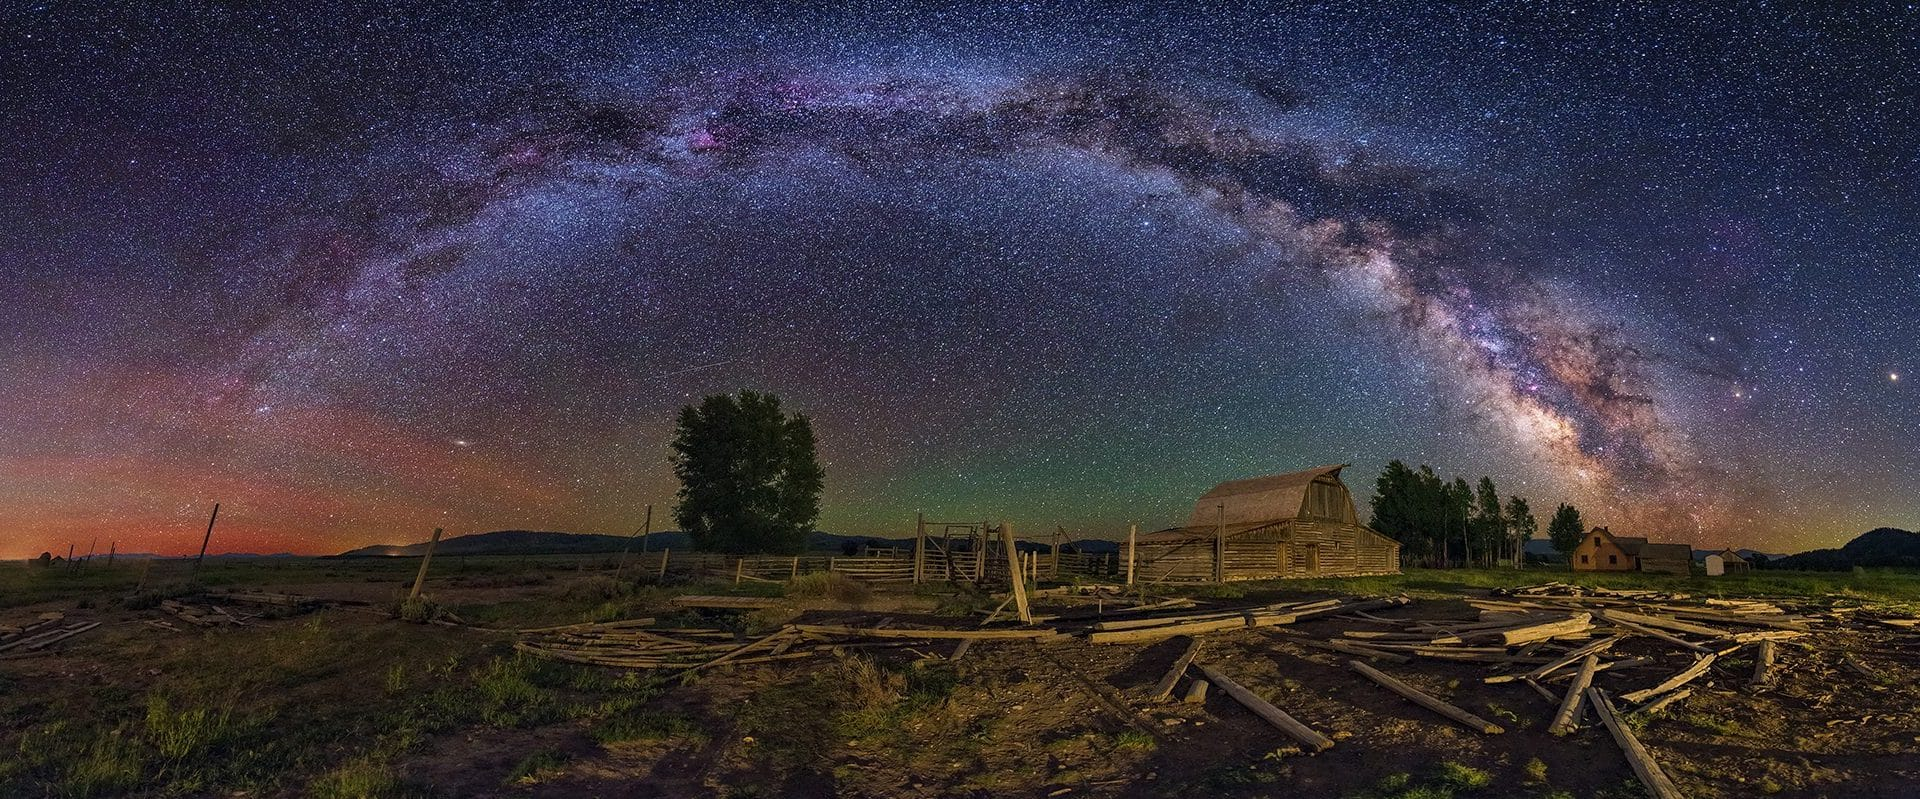 Moulton Barn Milky Way Panorama – Abandoned Foreground